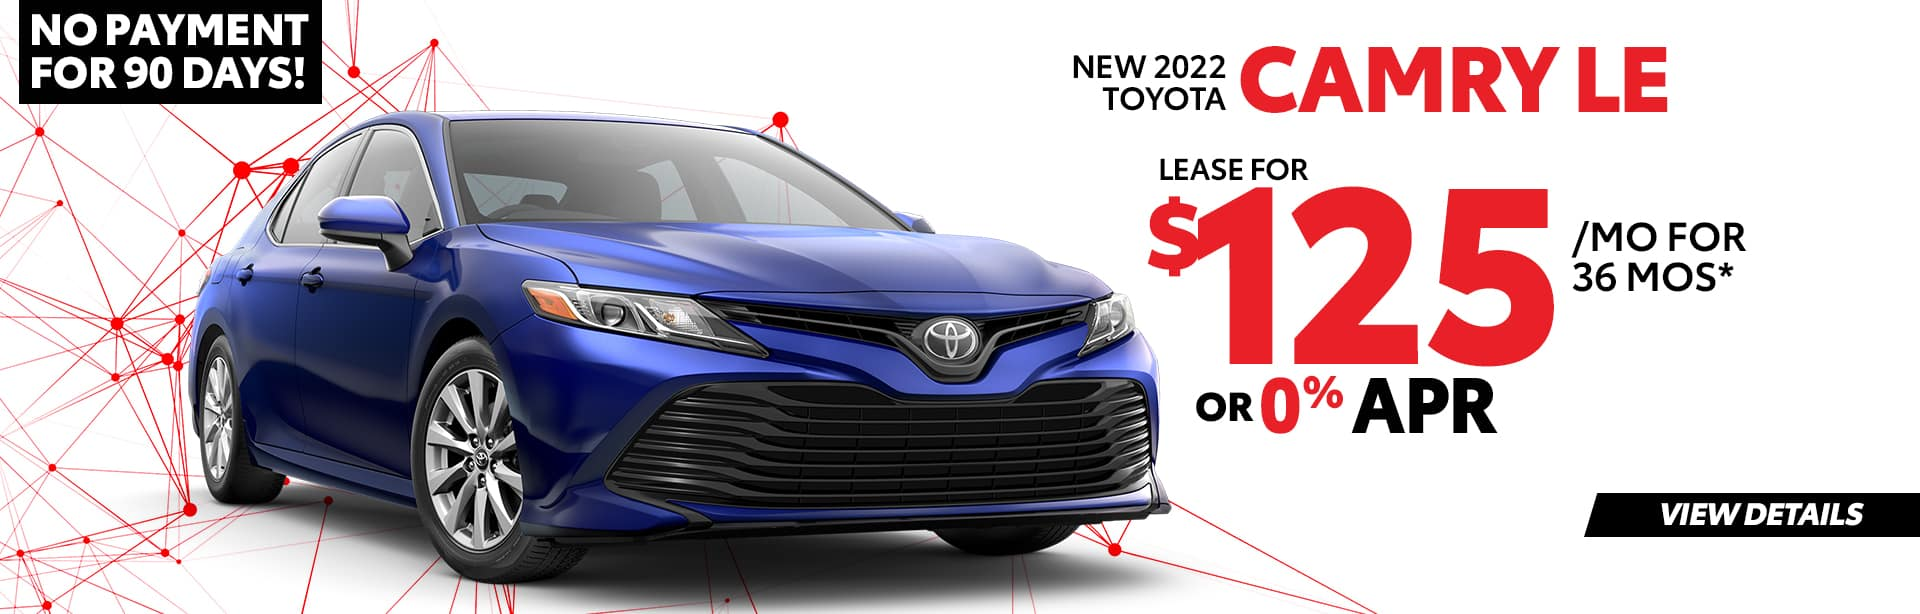 DOTO90023-01-OCT21-Campaign-Slide-ENG-camry